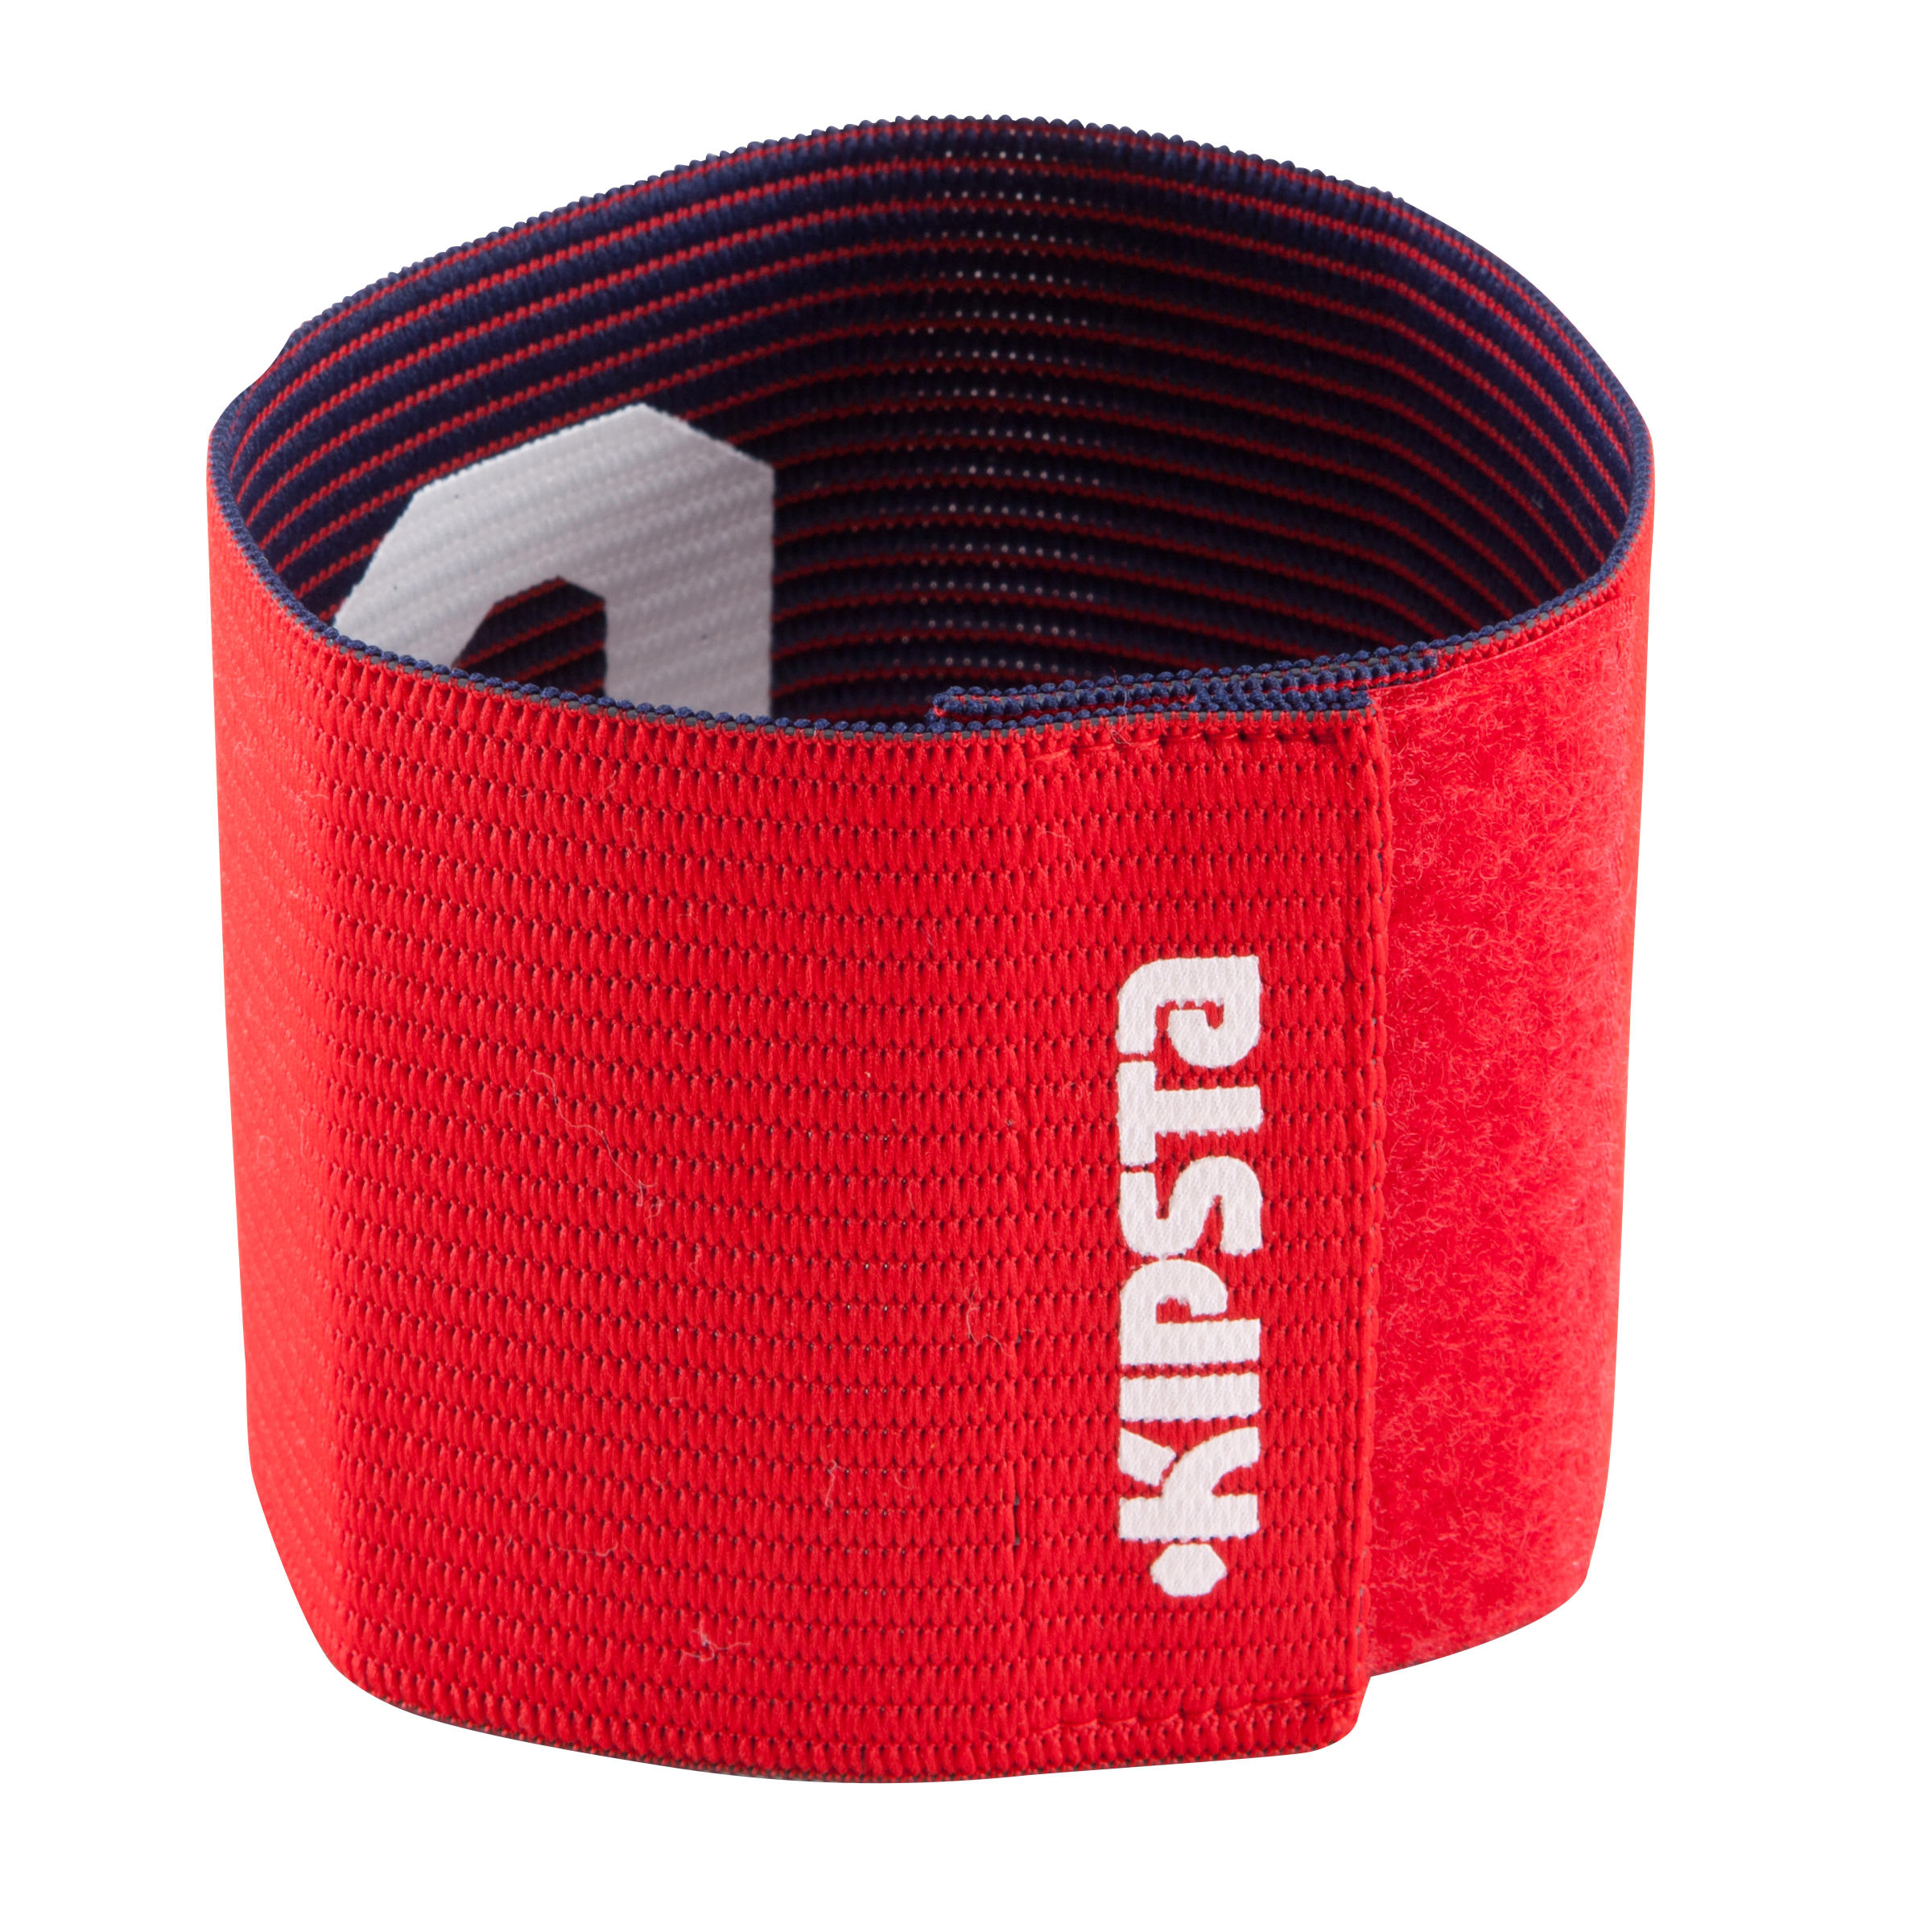 Reversible Captain's Armband - Red/Purple.